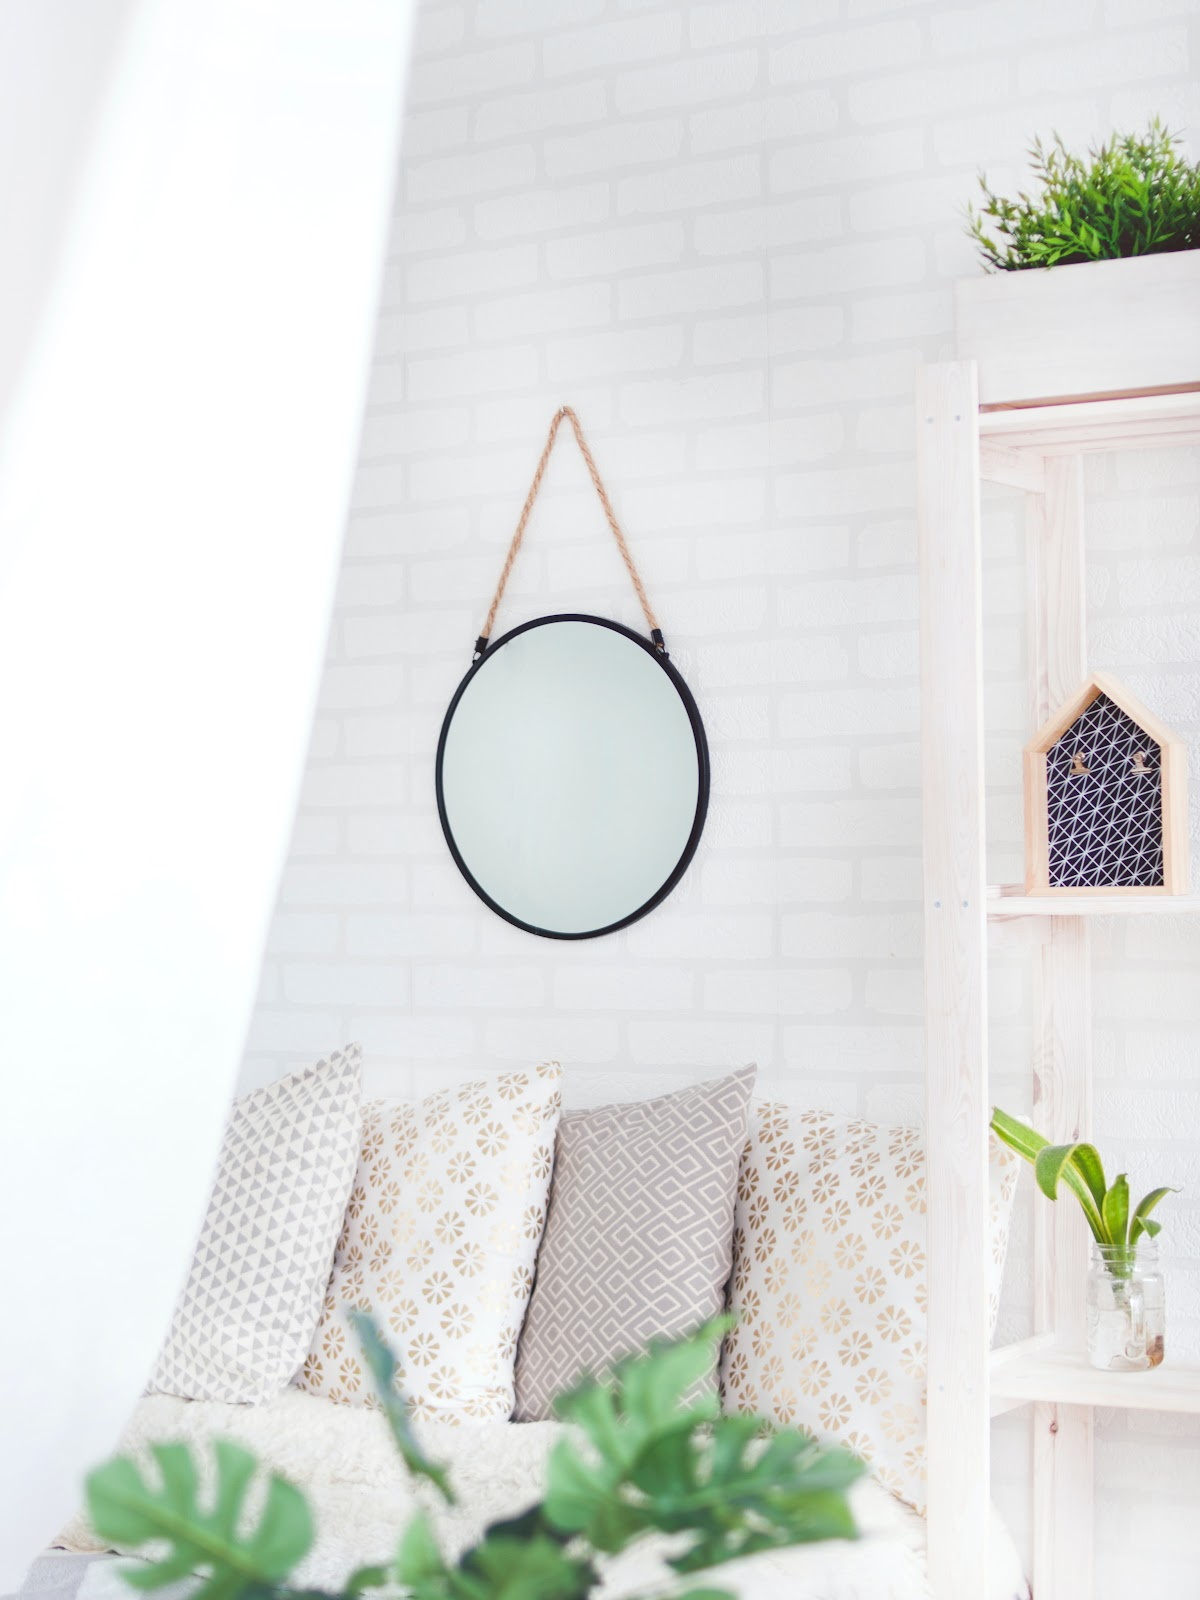 interior design of a condo unit living room with bright white and nude designs and a mirror with black edges hung on a brick-designed wall